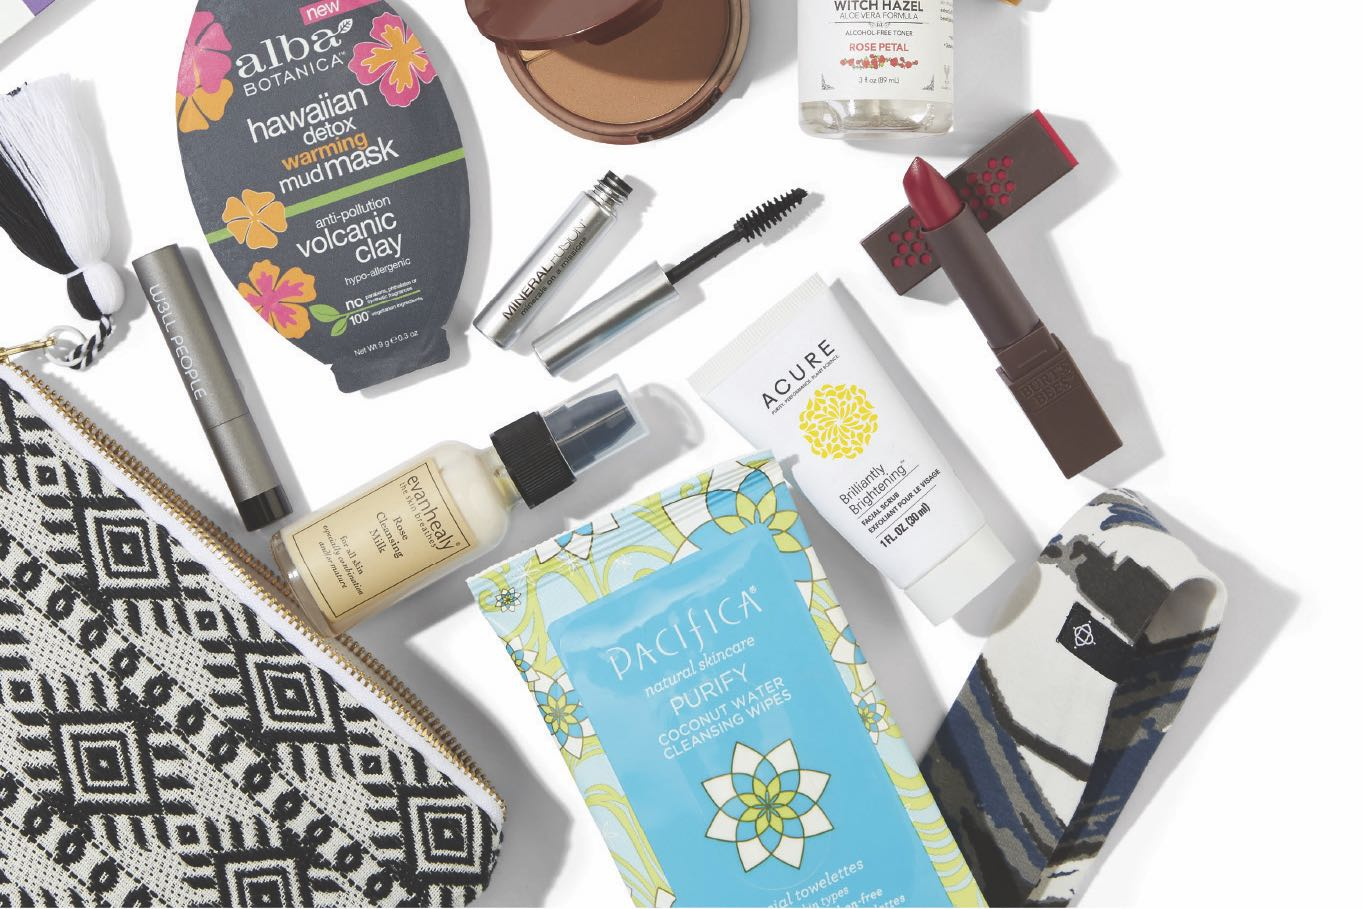 7df8e3993701 For Whole Foods Beauty Week, All In-Store Beauty and Skin-Care ...